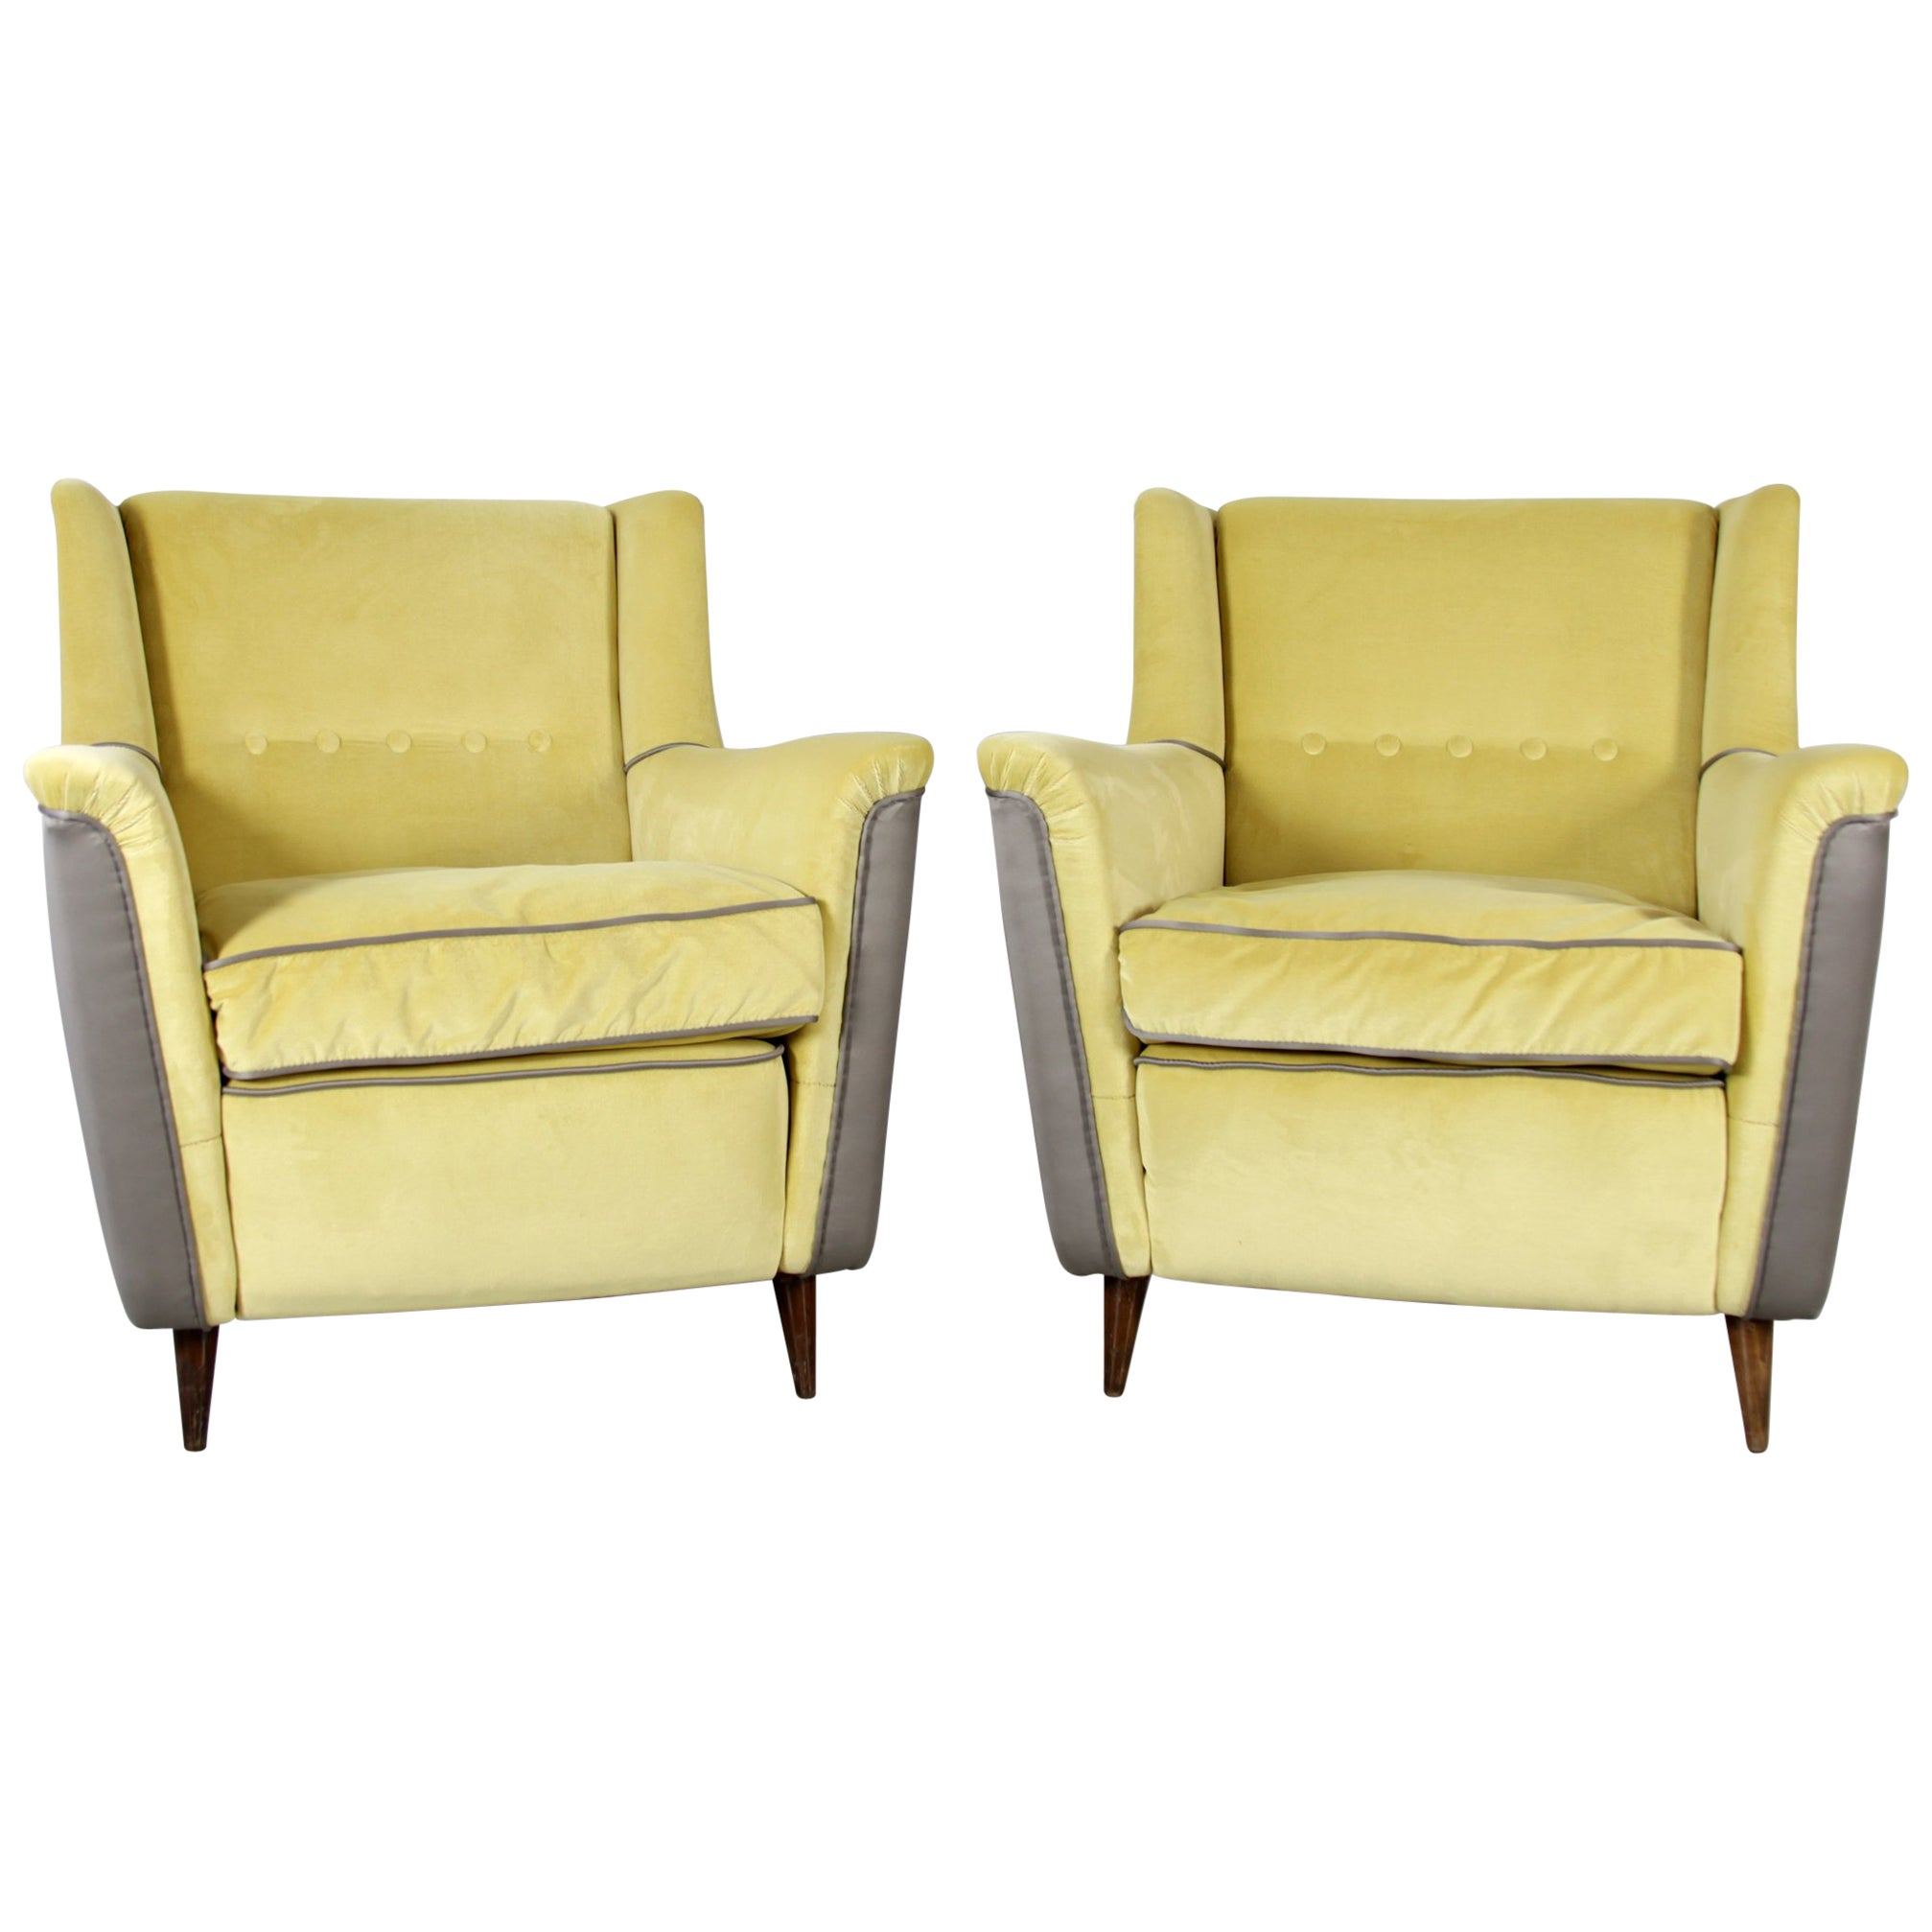 Pair of Cassina Chairs Model 809